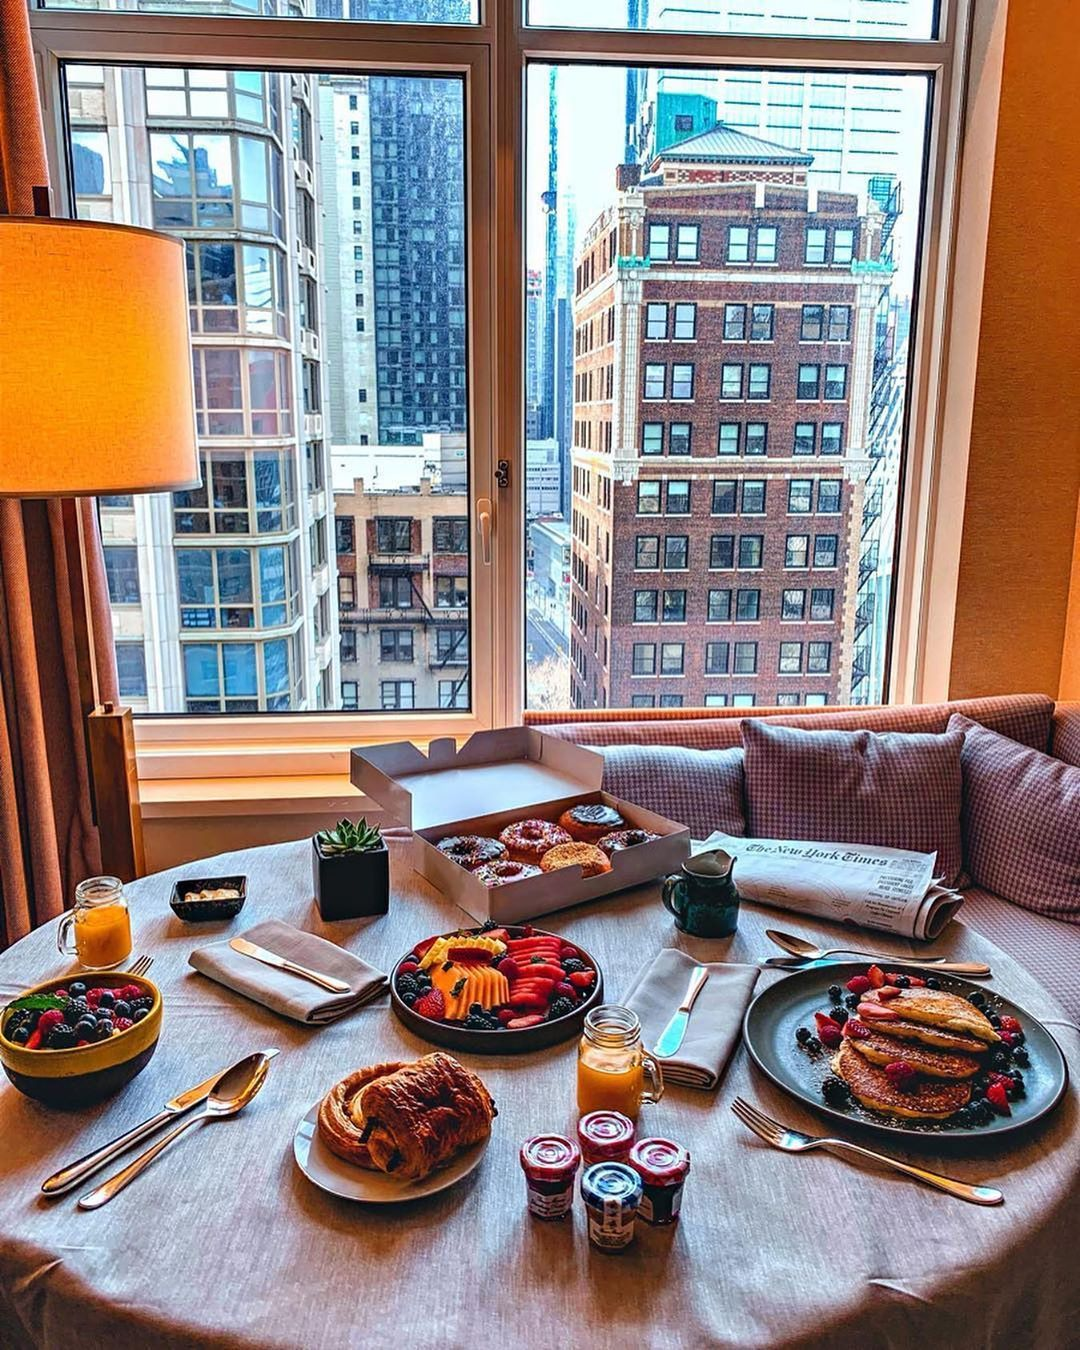 Image May Contain People Sitting Table Indoor And Food Breakfast In Bed Breakfast Tea Luxury Food